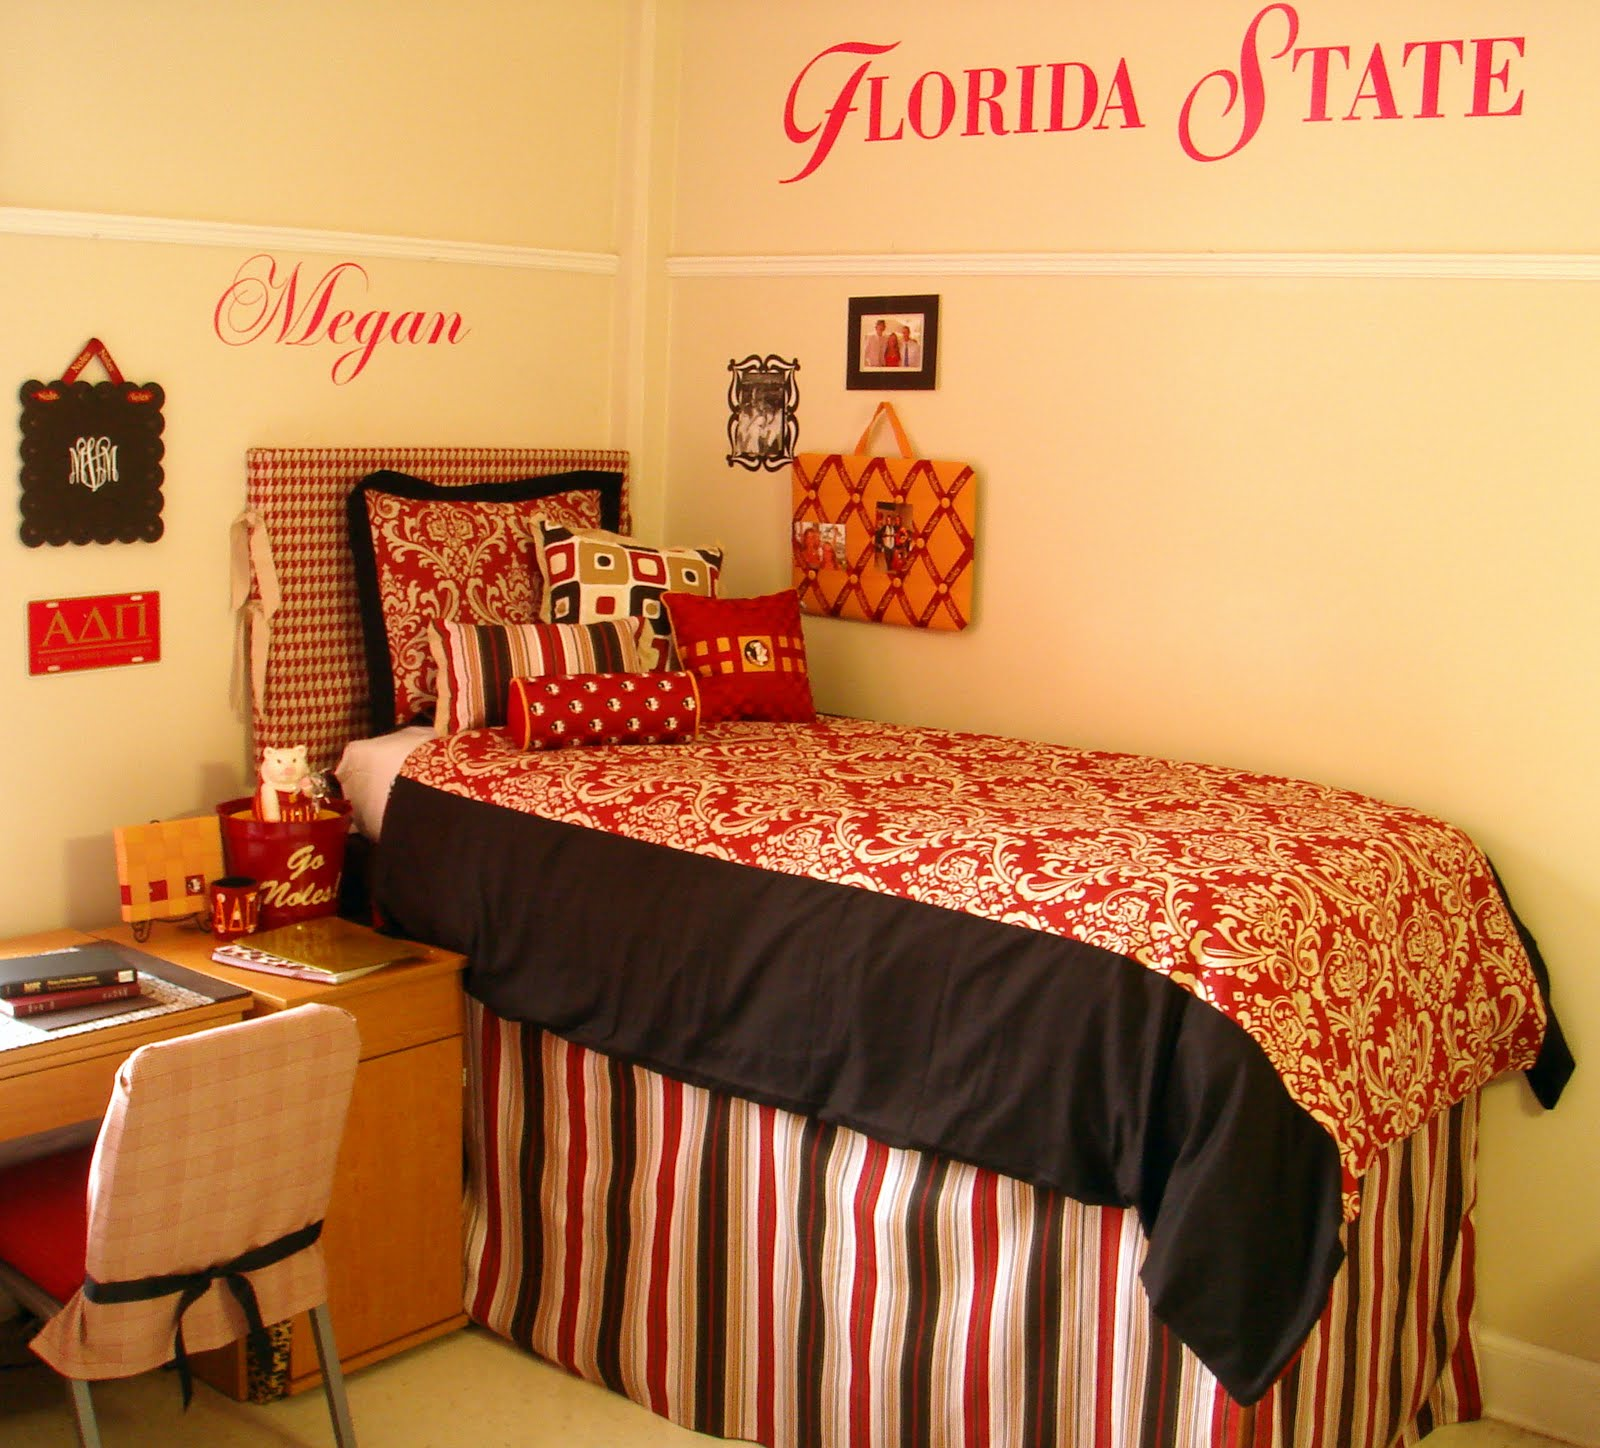 Wall Decoration Ideas For Dorm Room : Cute dorm decorating ideas dream house experience